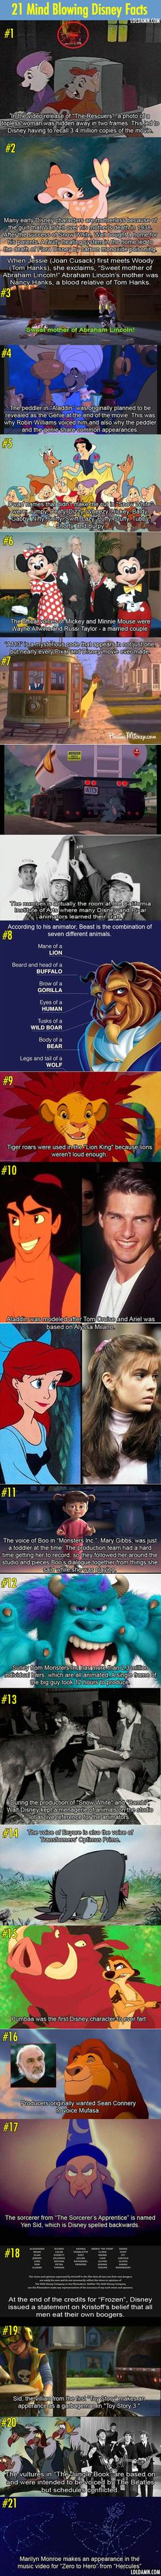 Another 21 Disney movies facts that will blow your mind. I had no clue about the majority of these.